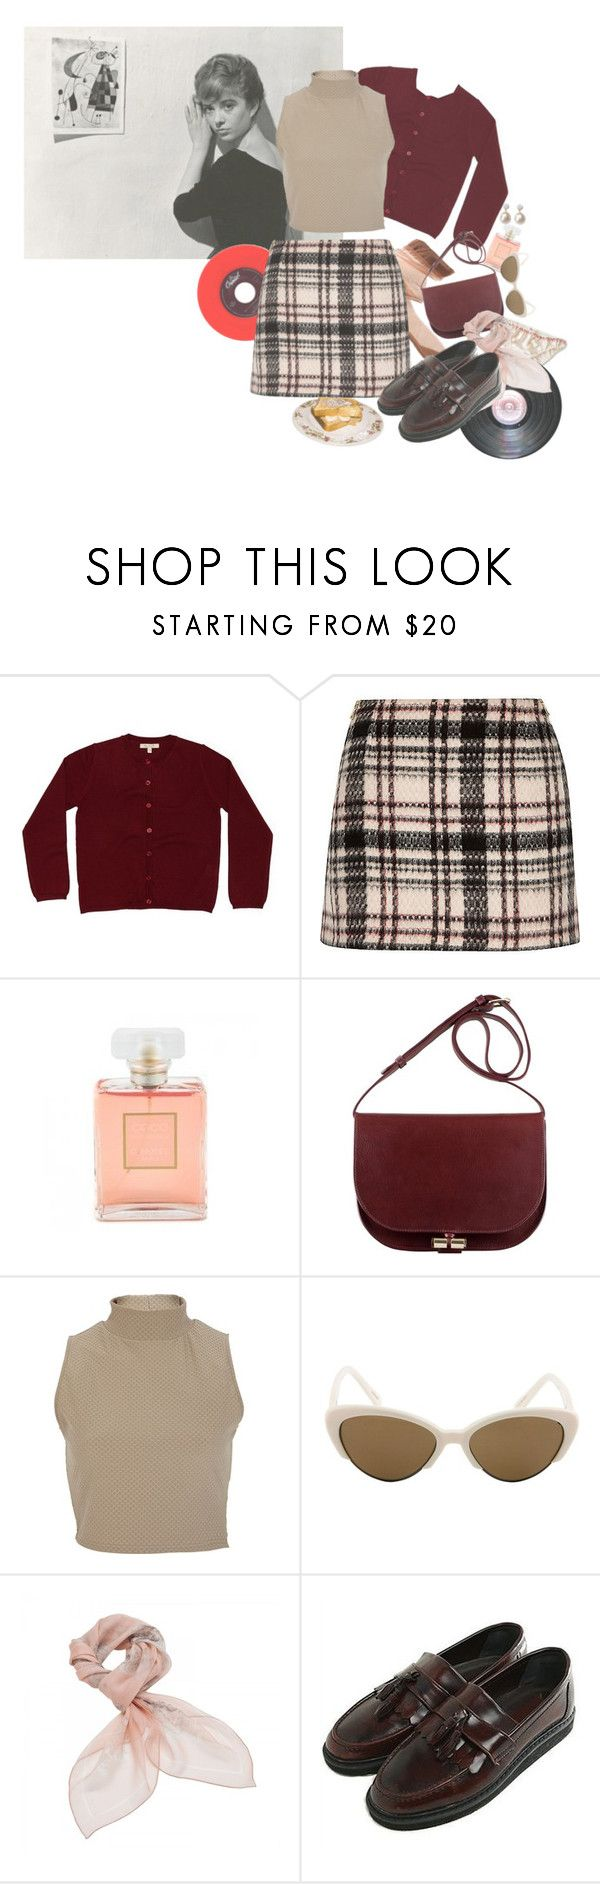 """""""i have been listening to a lot of music from the 1960s"""" by weimarerkunstlerin ❤ liked on Polyvore featuring Poppy Rose, Chanel, River Island, Linda Farrow, Alexander McQueen, The Cover and Marco Bicego"""